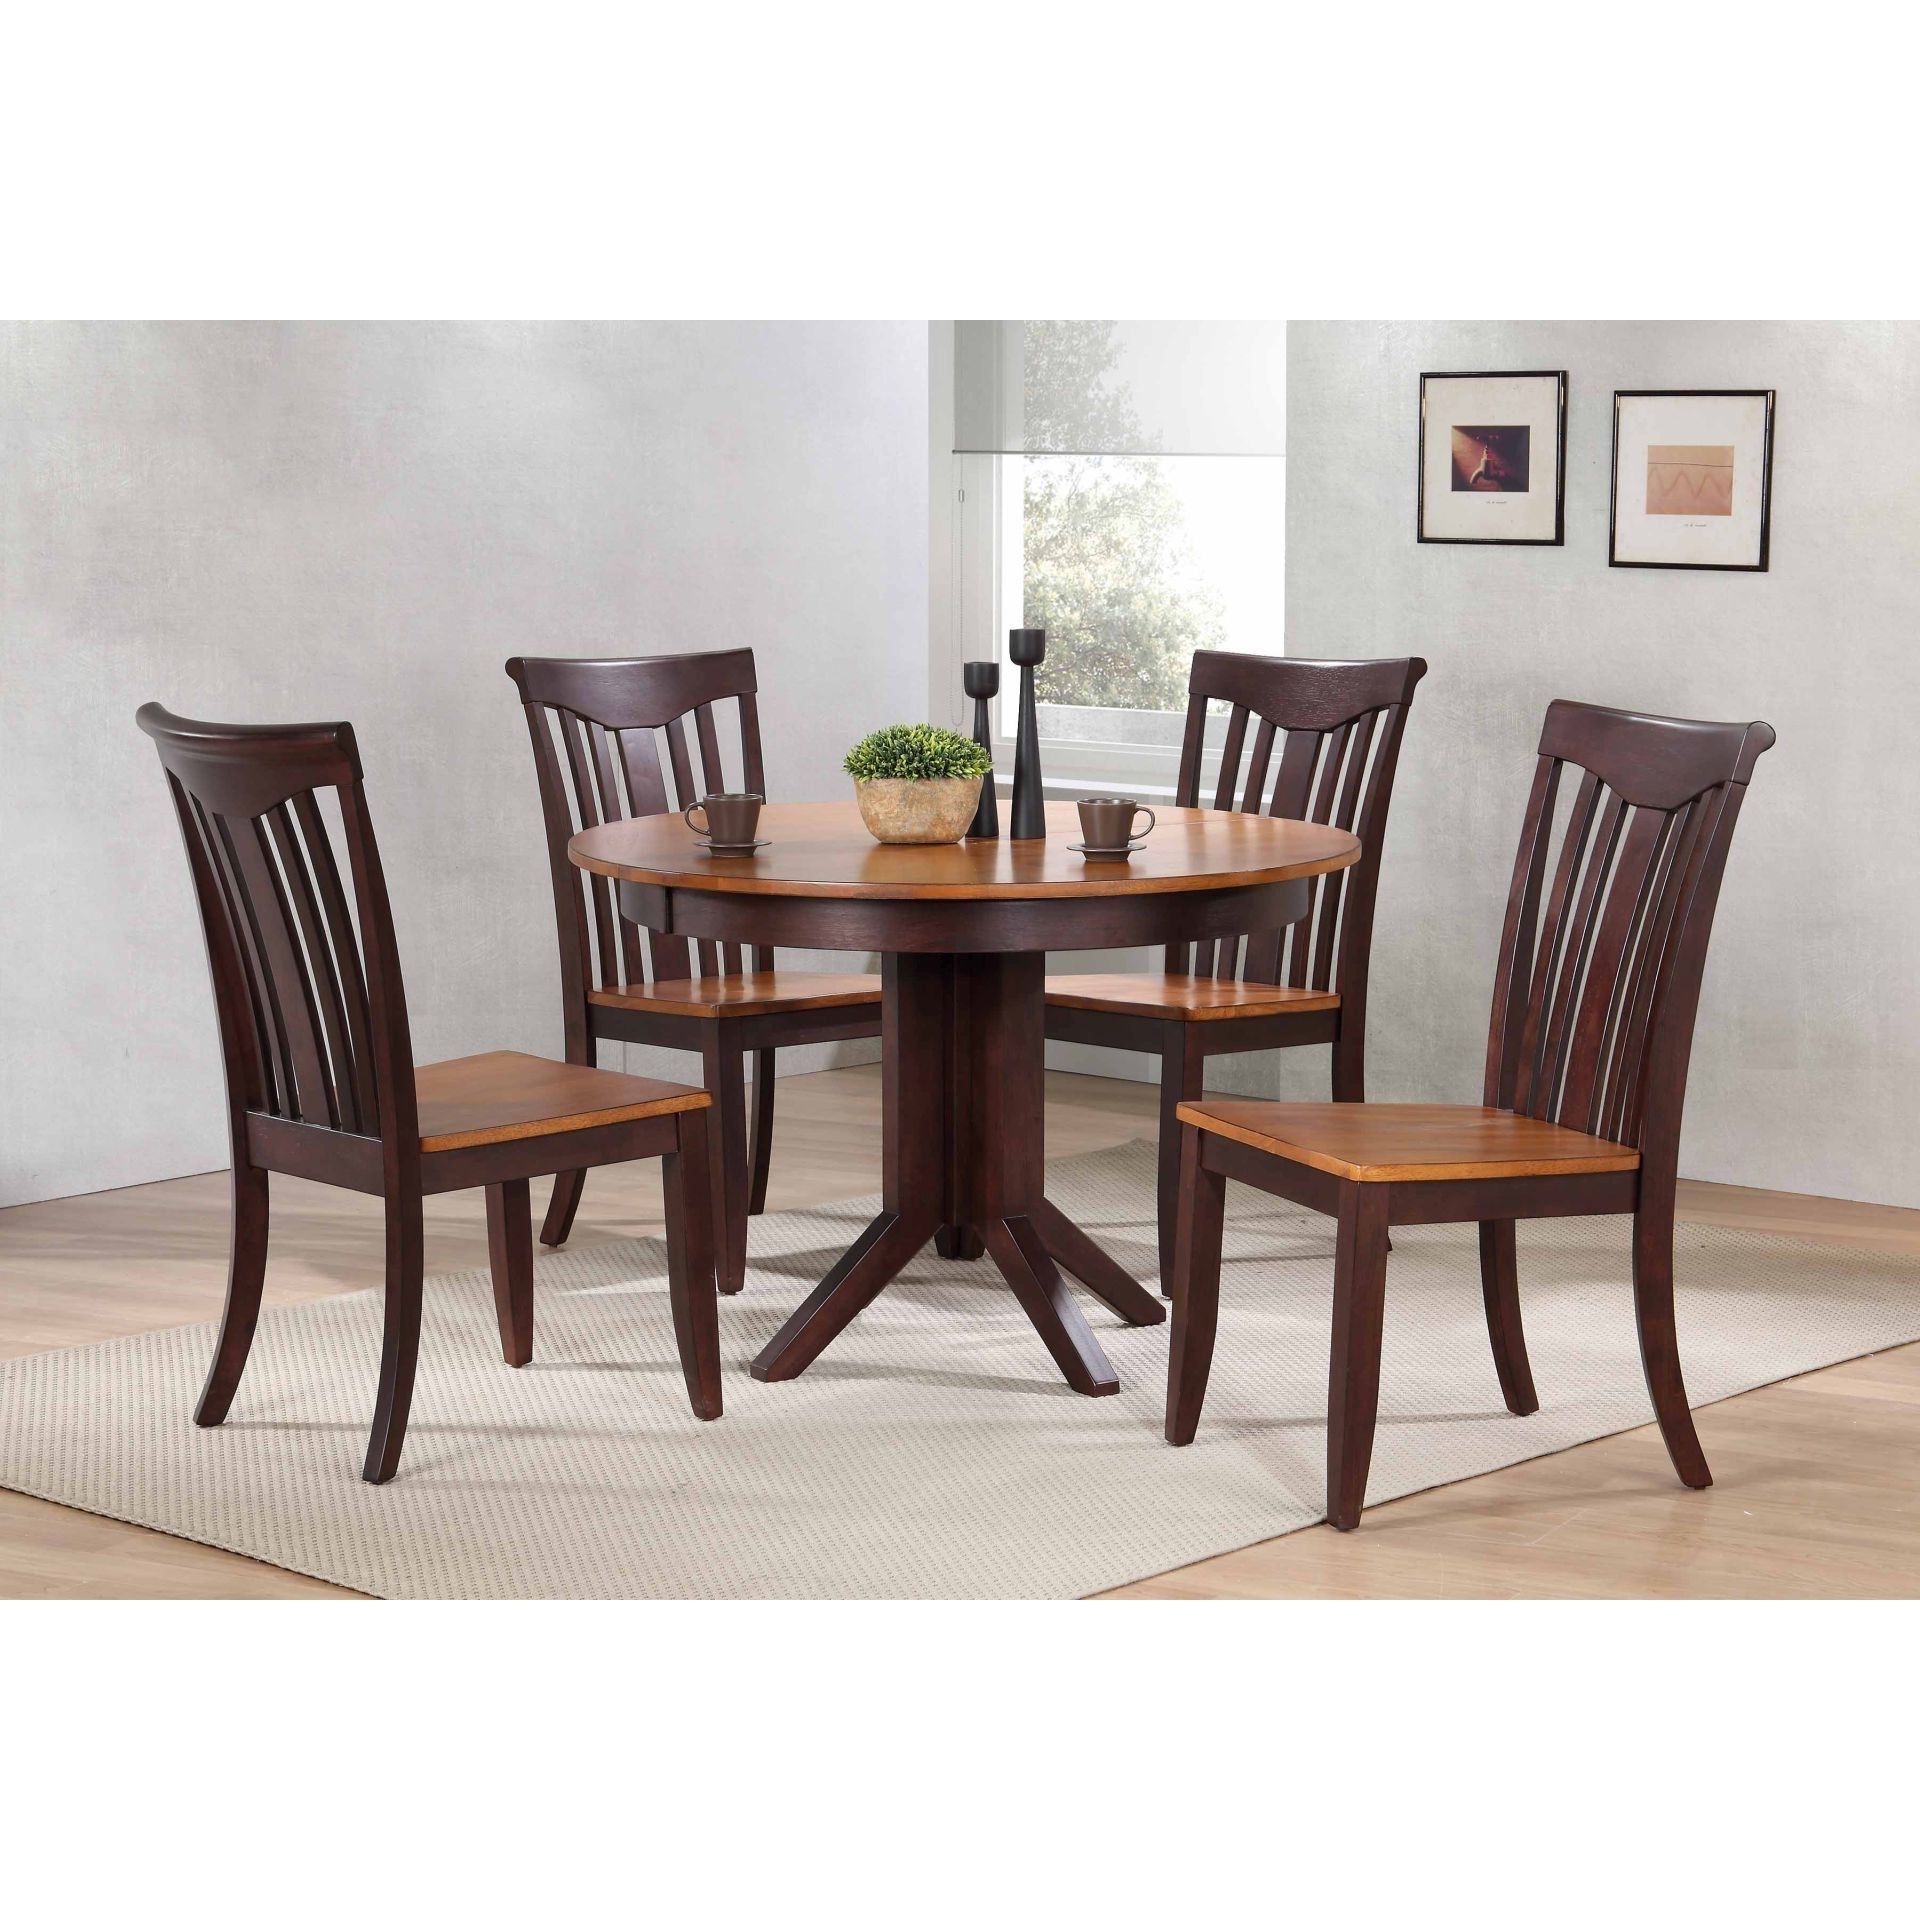 "Widely Used Caden 5 Piece Round Dining Sets With Upholstered Side Chairs With Shop Iconic Furniture Company 45""x45""x63"" Contemporary Whiskey/mocha (View 24 of 25)"